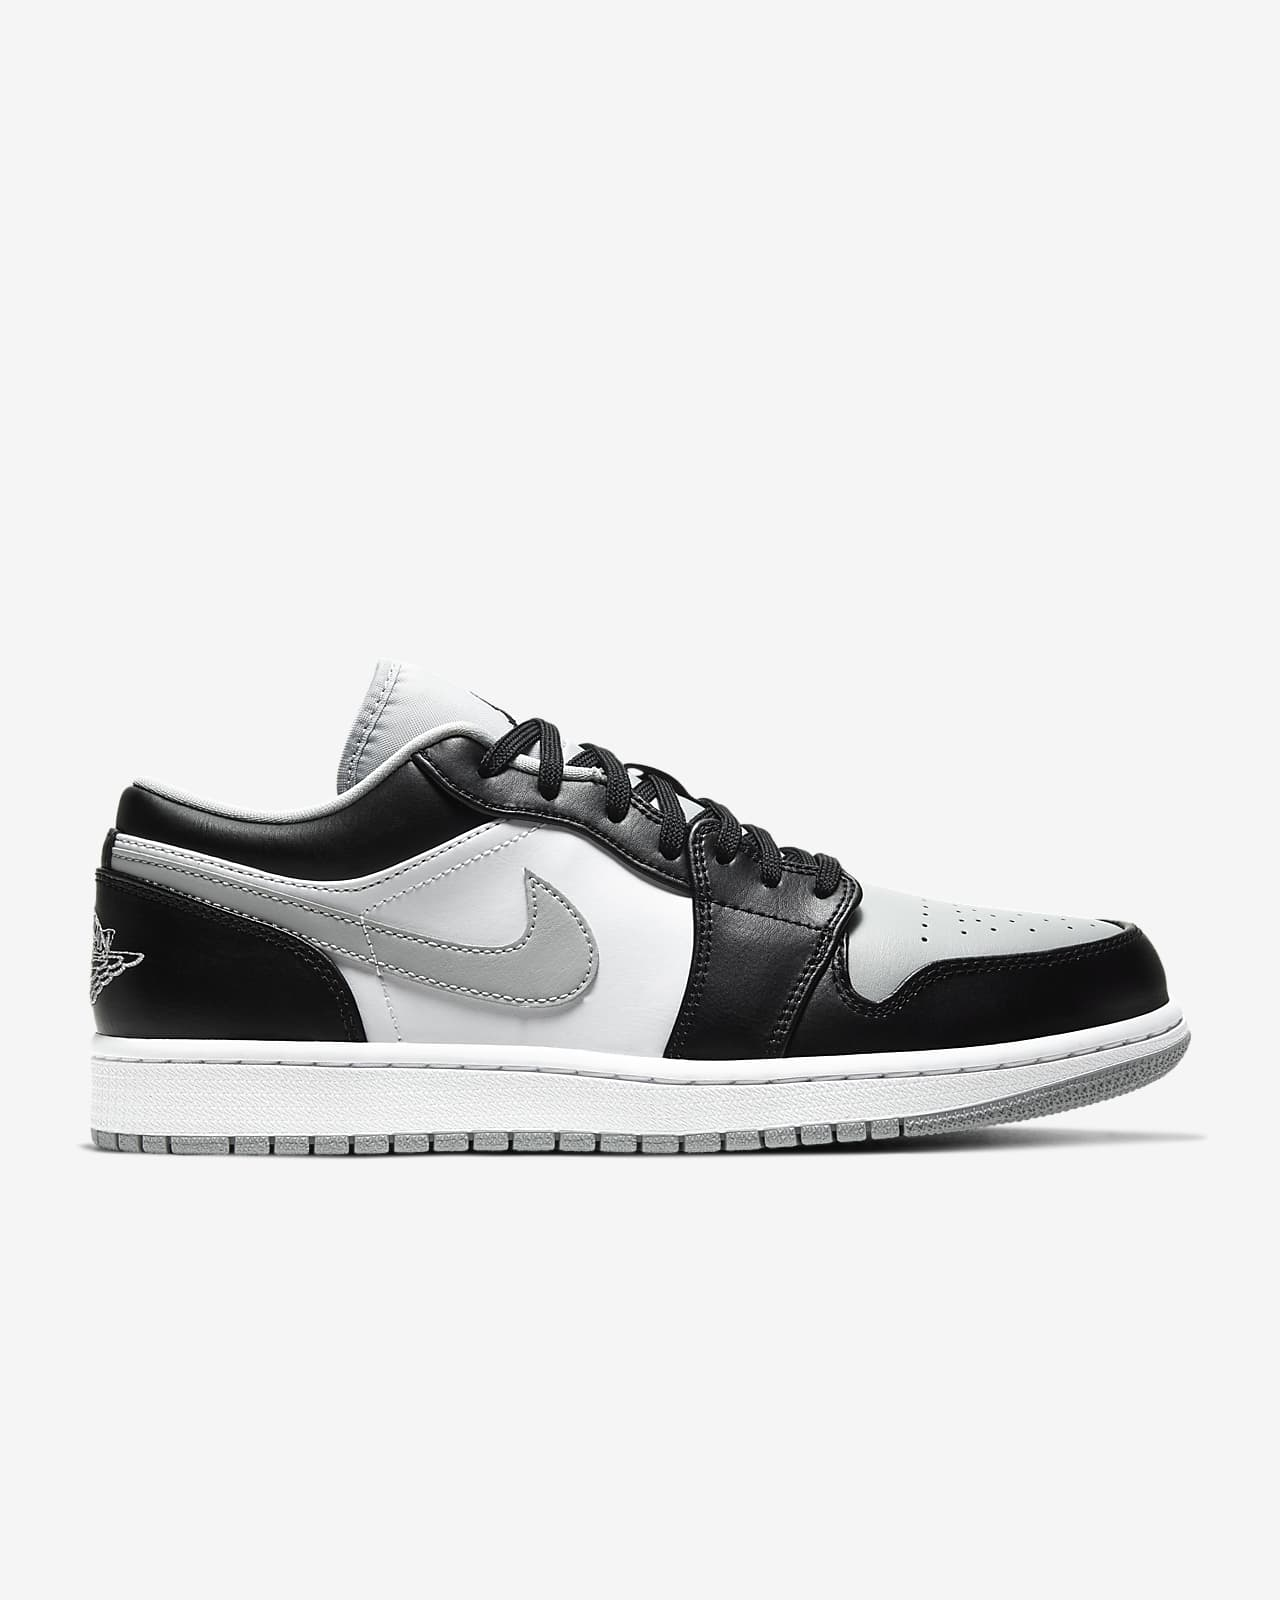 Air Jordan 1 Low Shoe. Nike JP